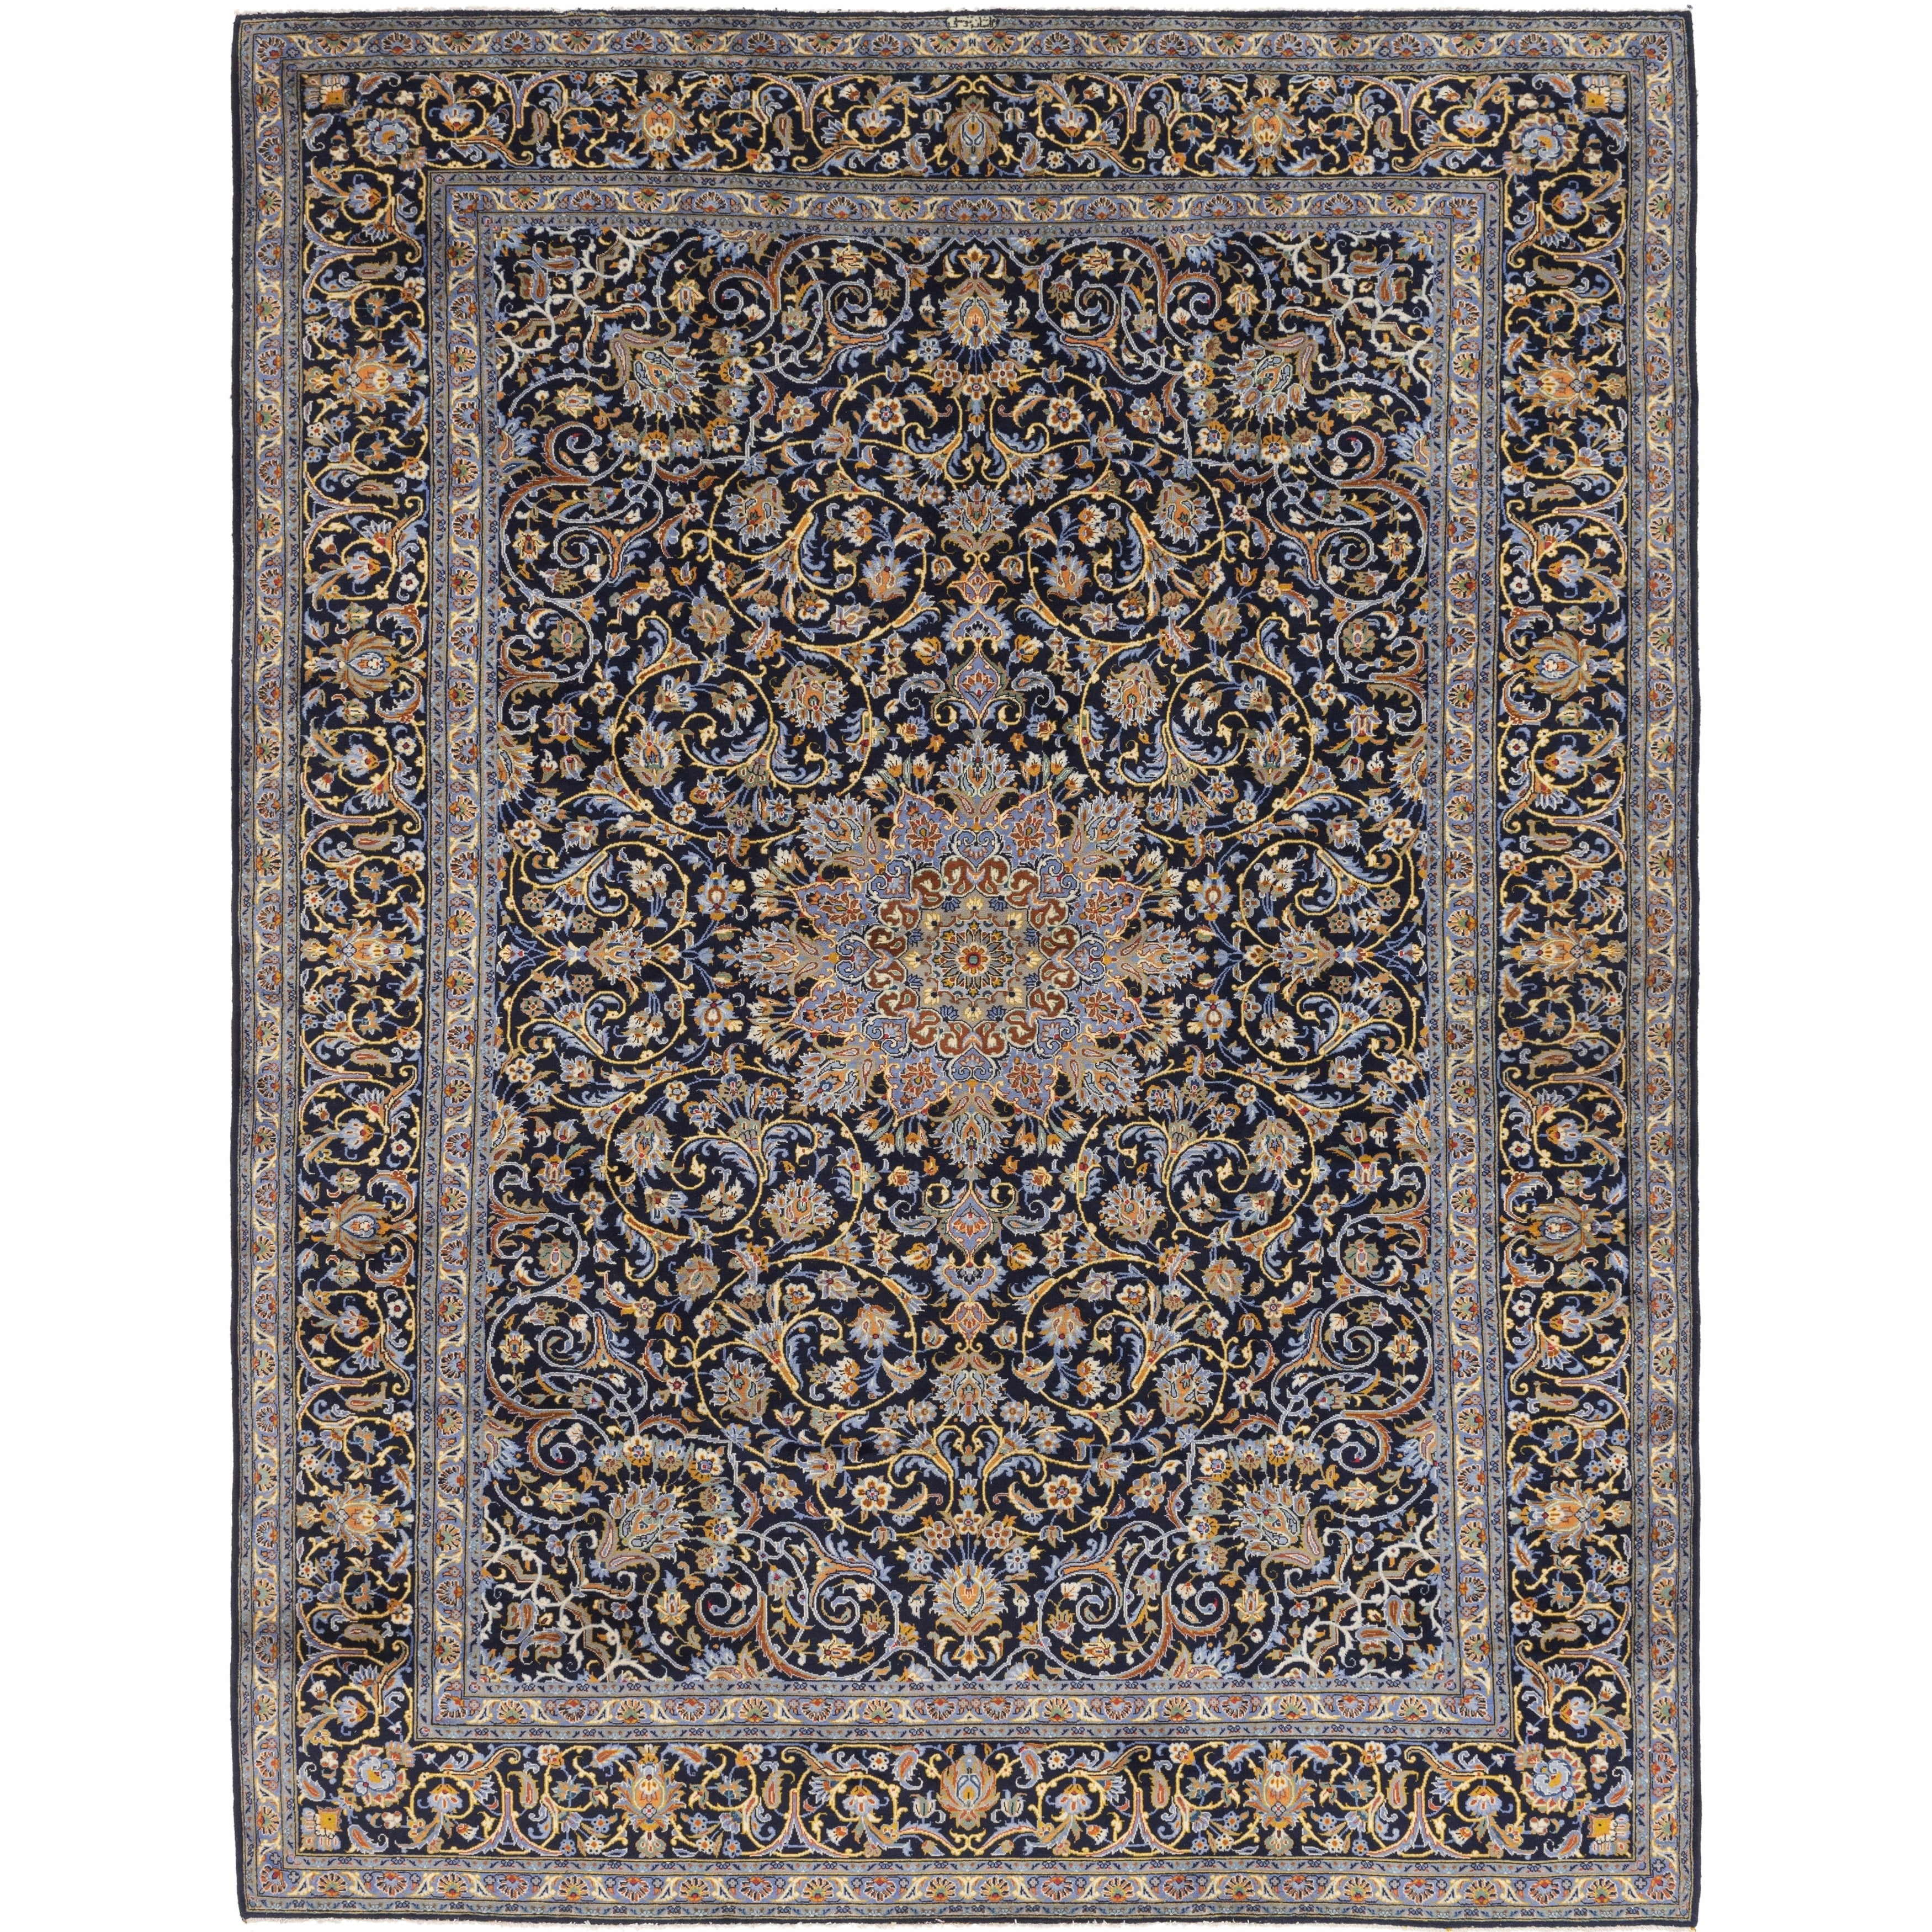 Hand Knotted Kashan Wool Area Rug - 10 2 x 13 4 (Navy blue - 10 2 x 13 4)